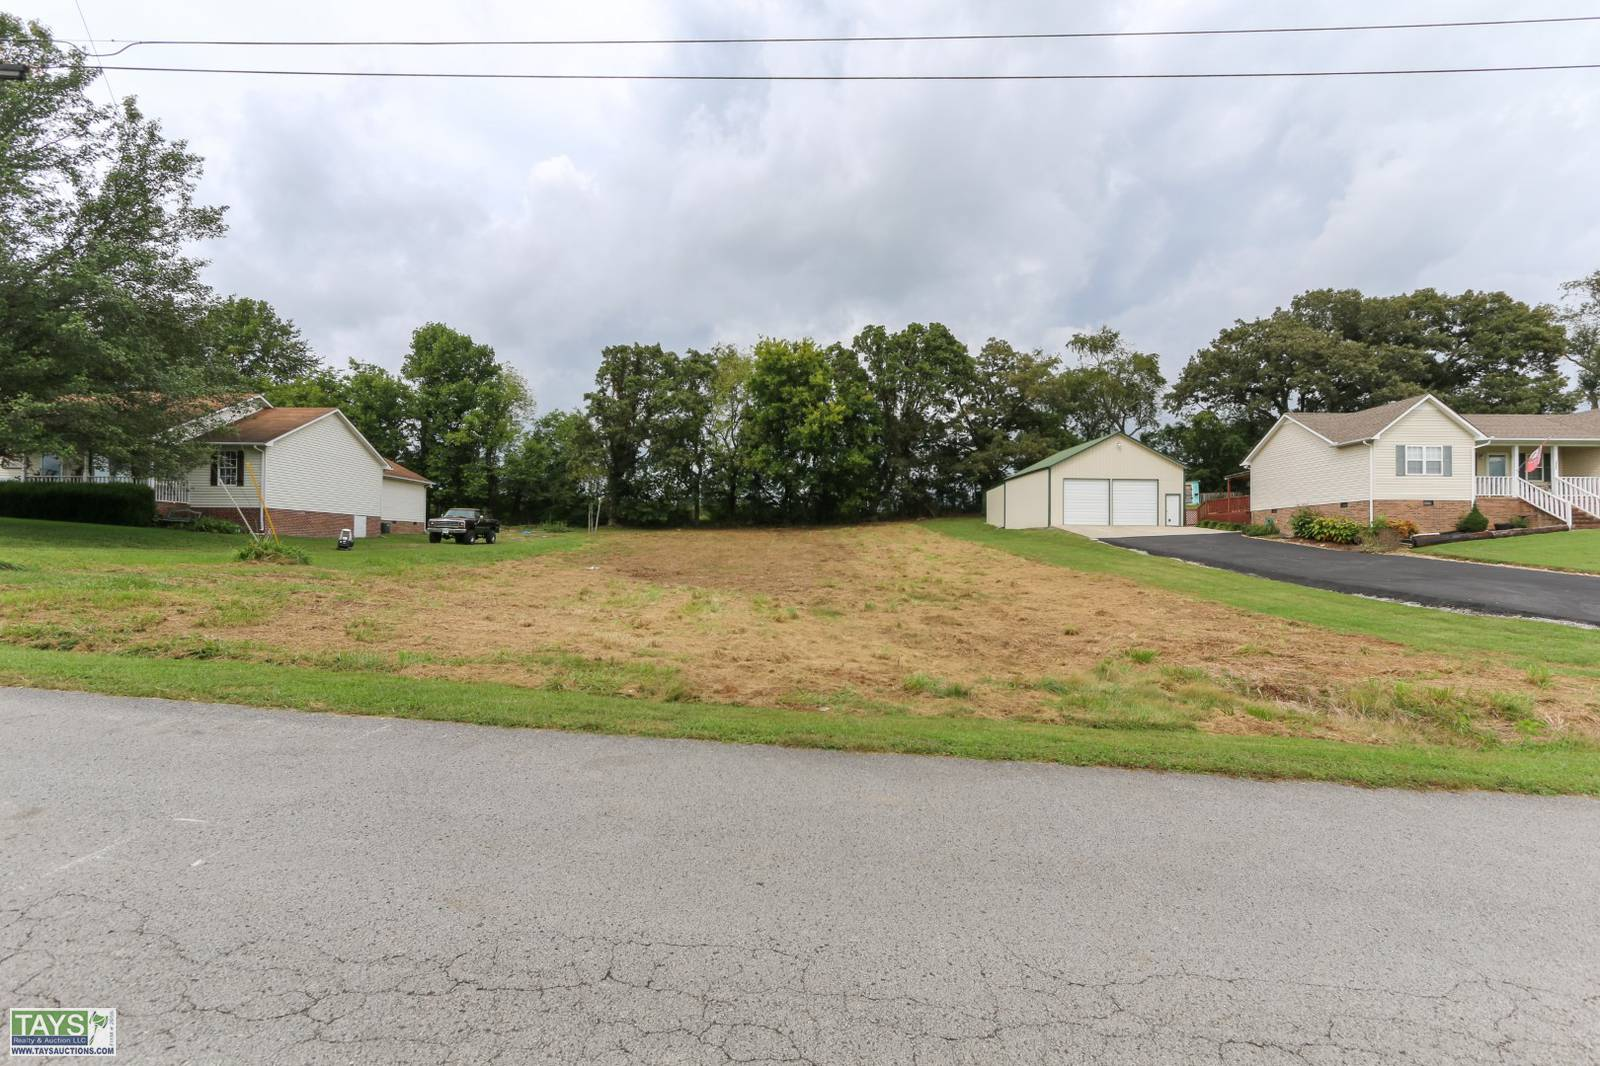 ONLINE ABSOLUTE AUCTION: 0.47 Ac± RESIDENTIAL LOT IN CRYSTAL SPRINGS SUBDIVISION